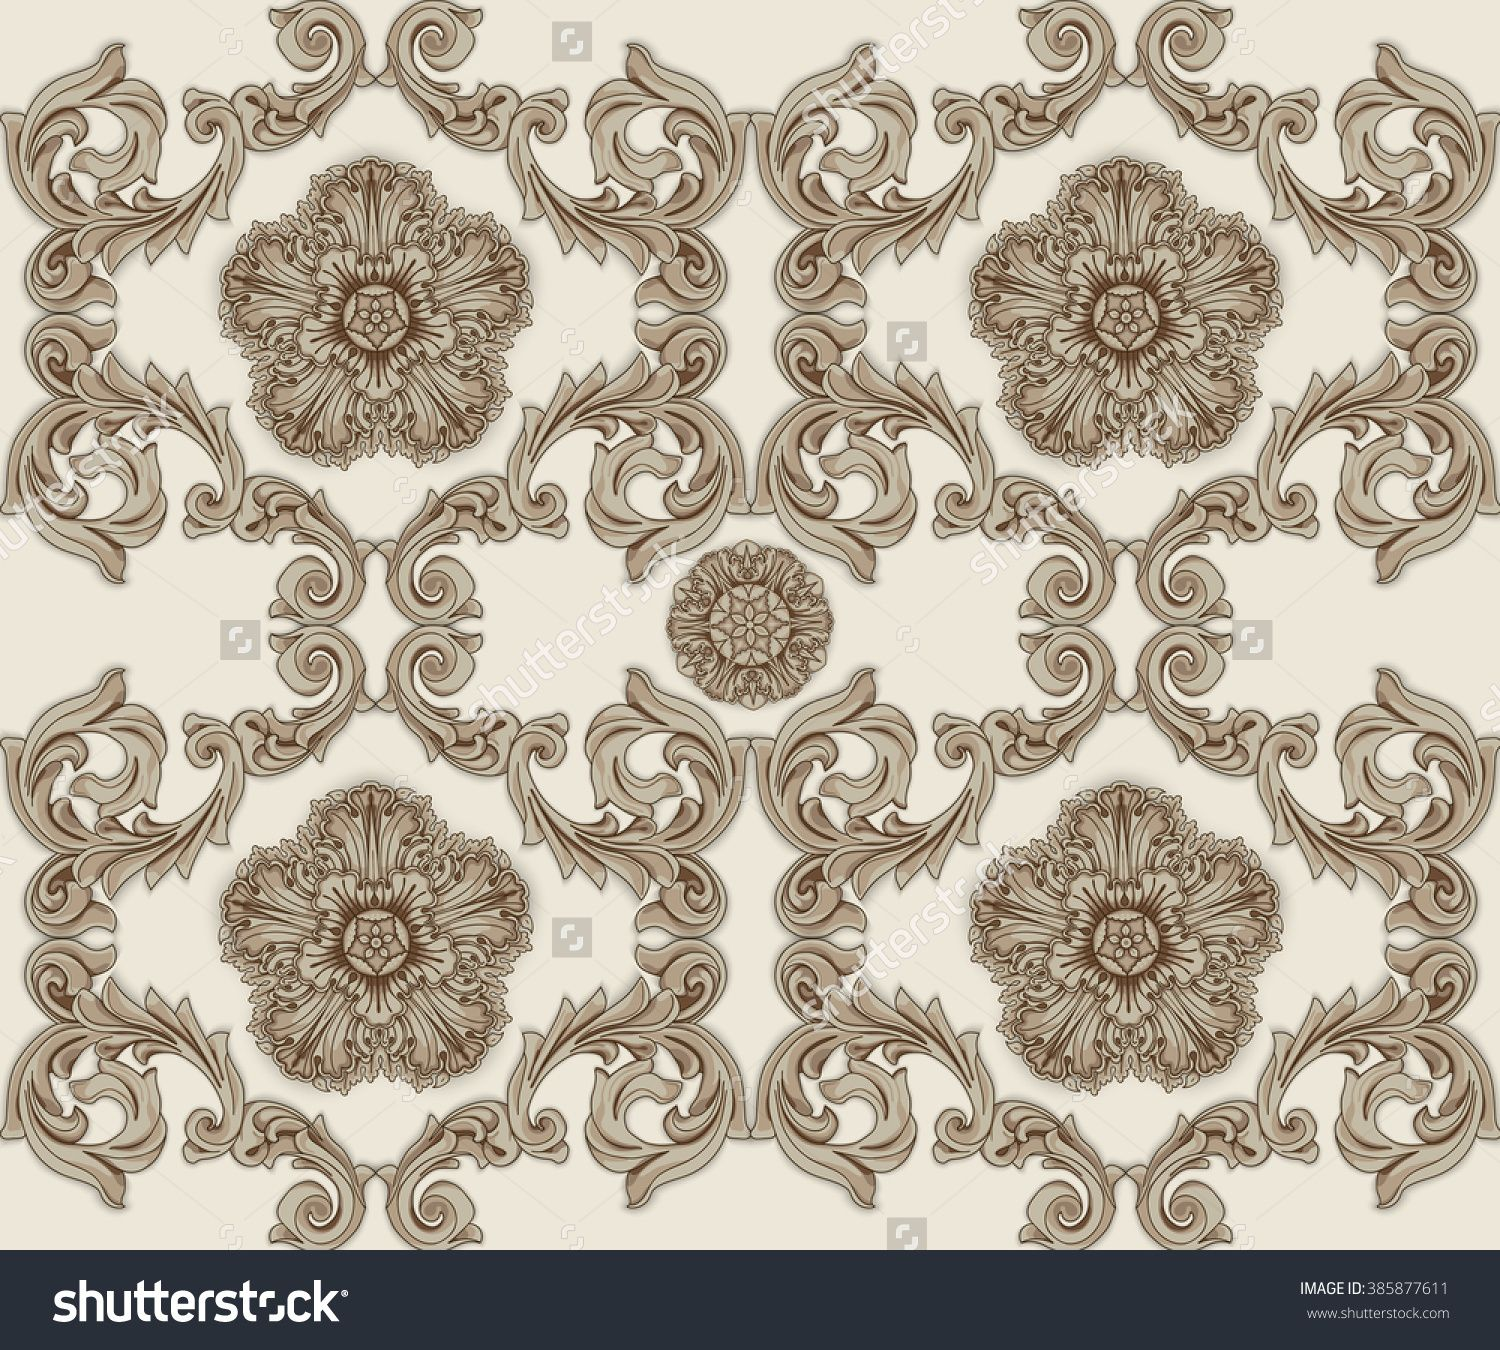 Brown Seamless Pattern With Flower And Ornaments In Baroque Style Wallpaper Design Background